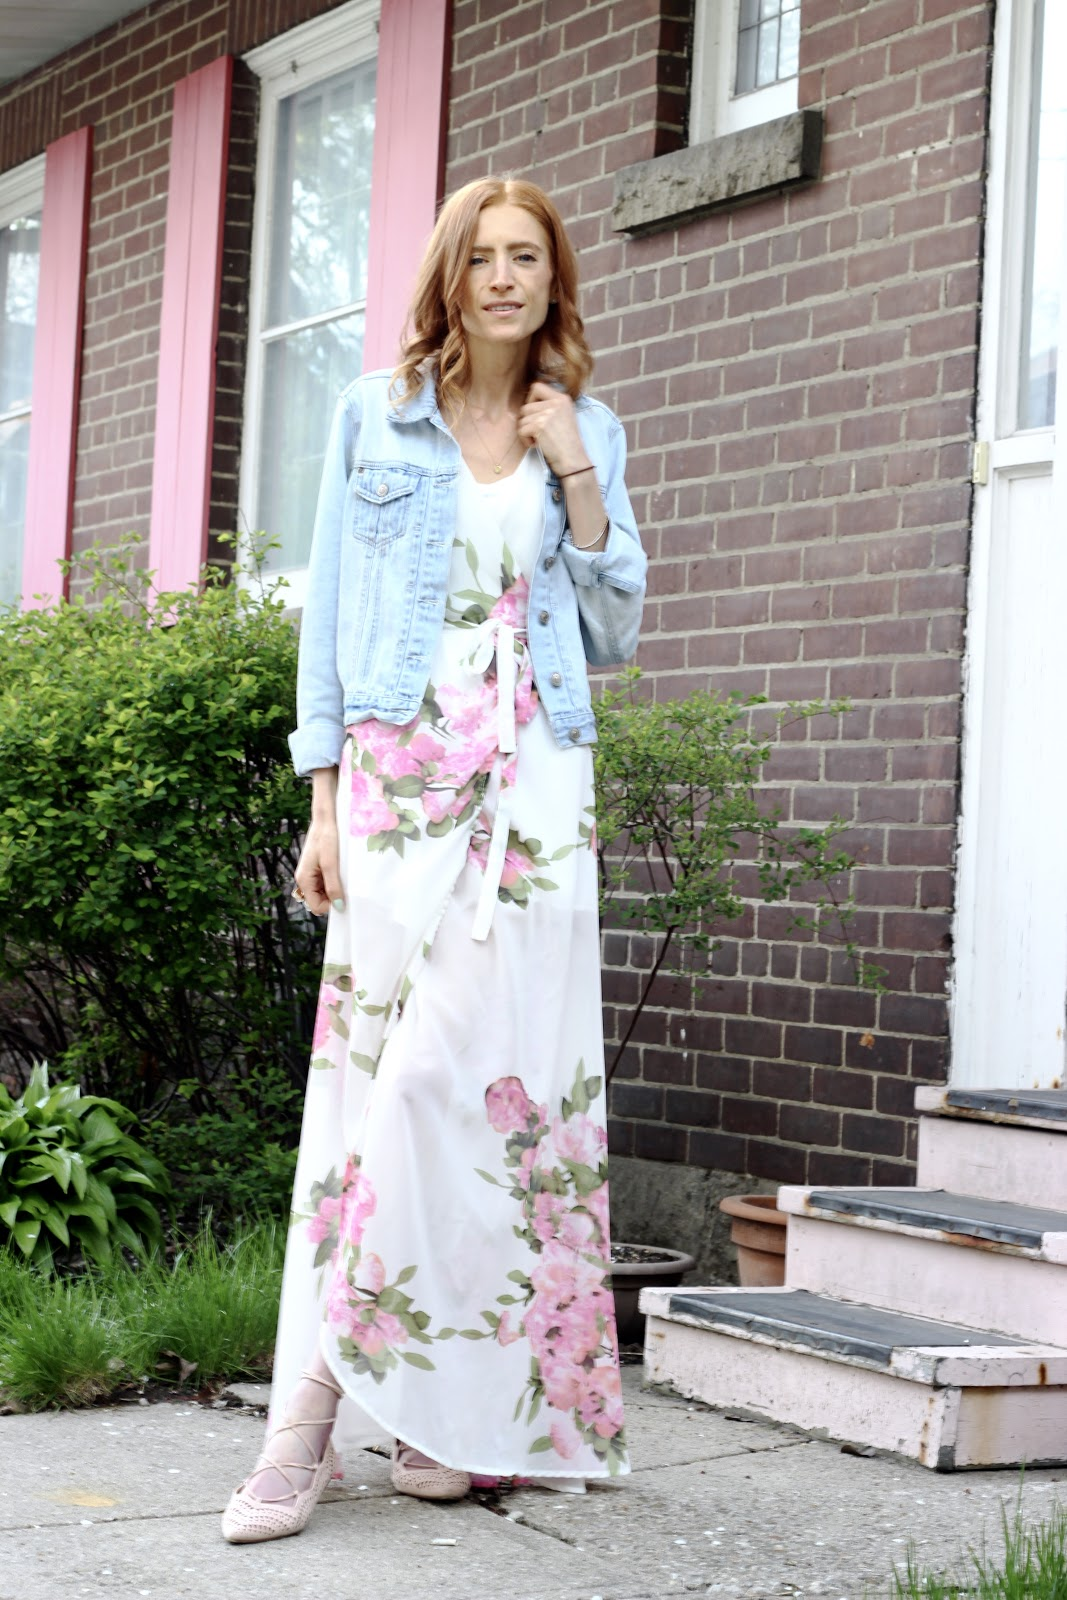 Floral maxi Dress, Spring Style, Pixi Beauty